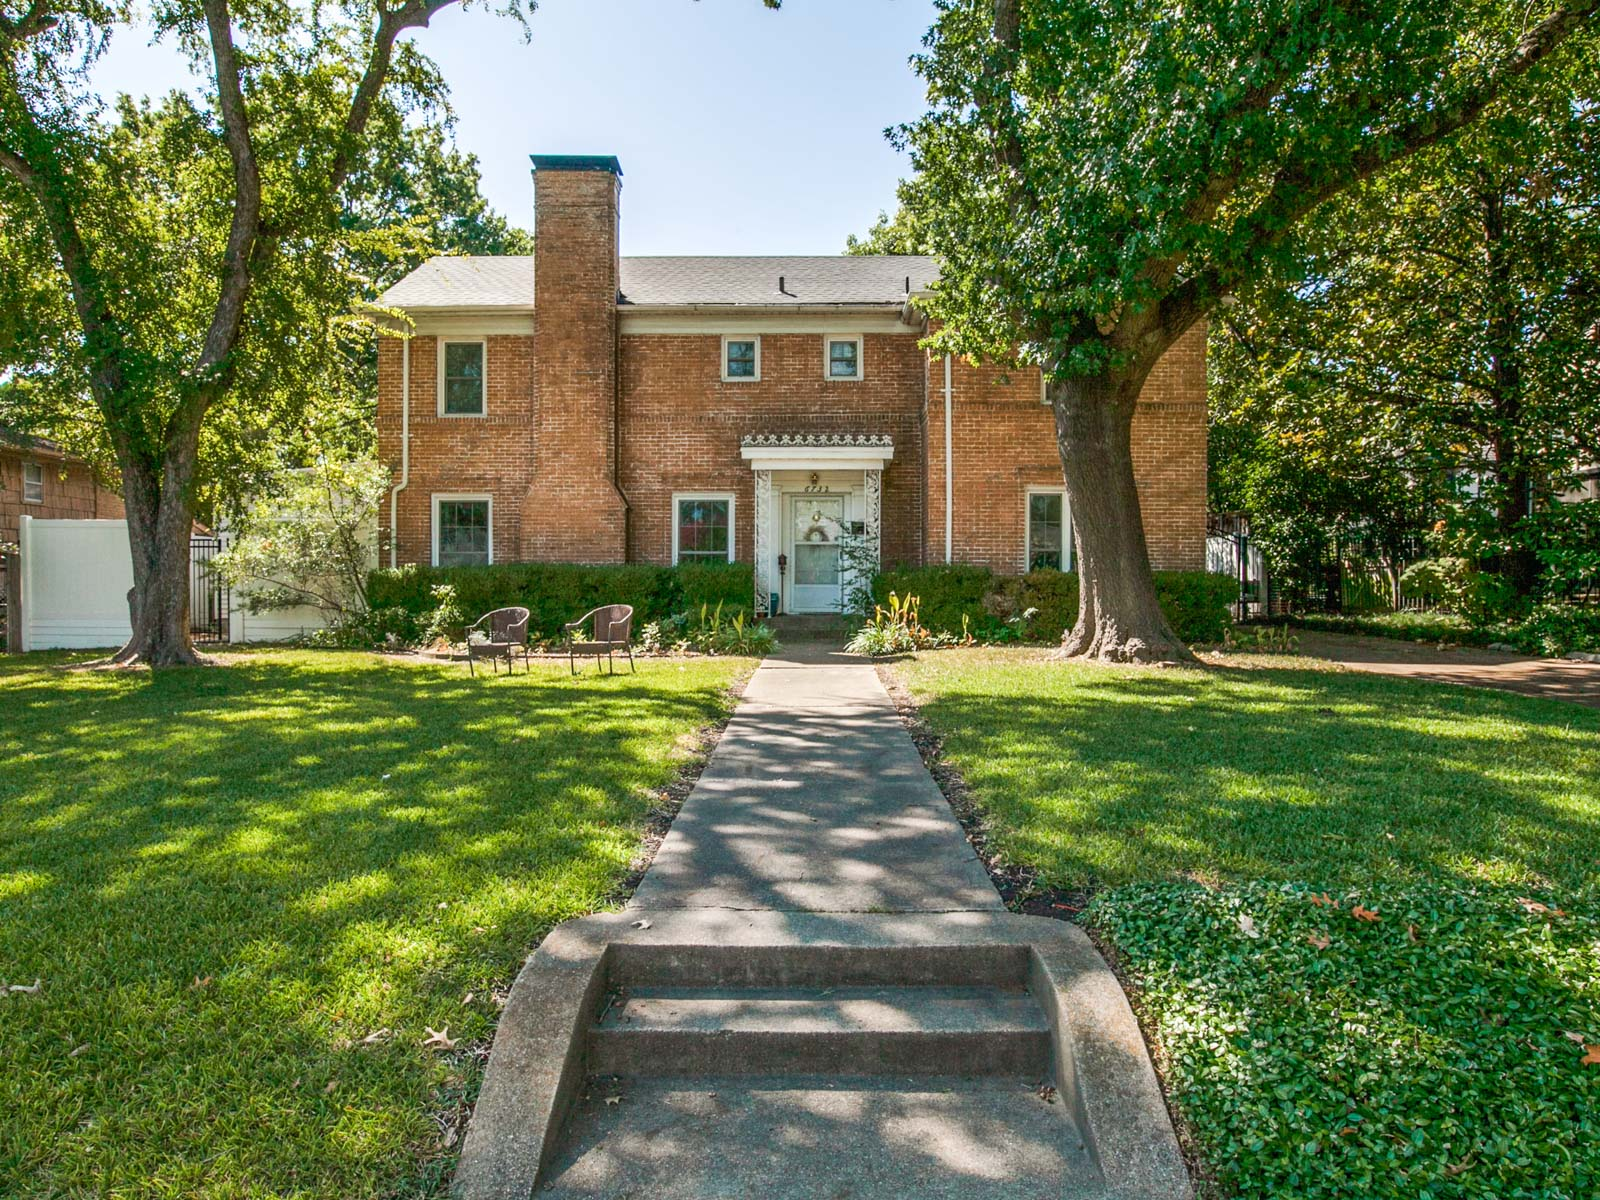 Single Family Home for Sale at Lakewood Traditional Home 6732 Lakeshore Drive Dallas, Texas 75214 United States